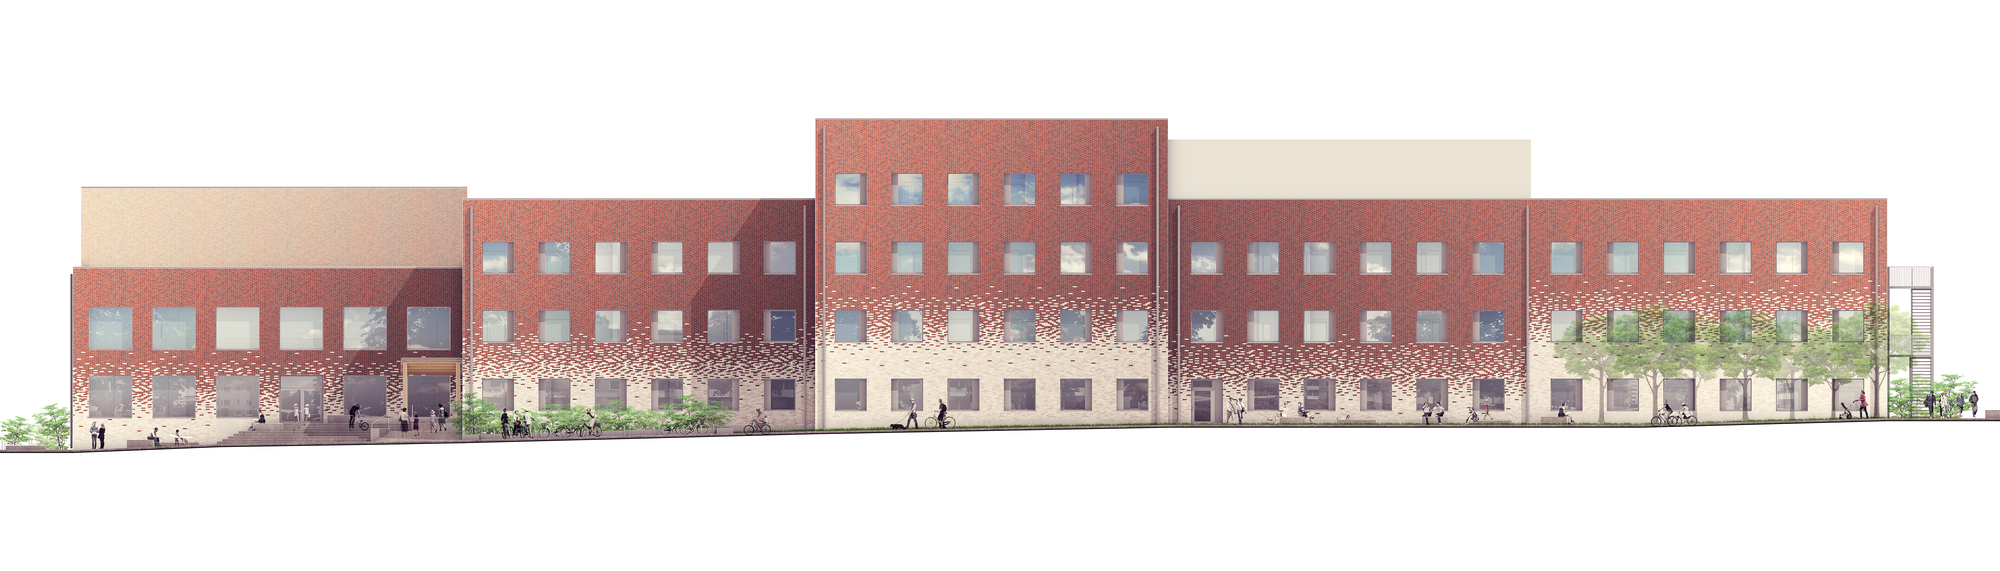 7_Elevation_North_Coloured_Tiundaskolan_School.jpg